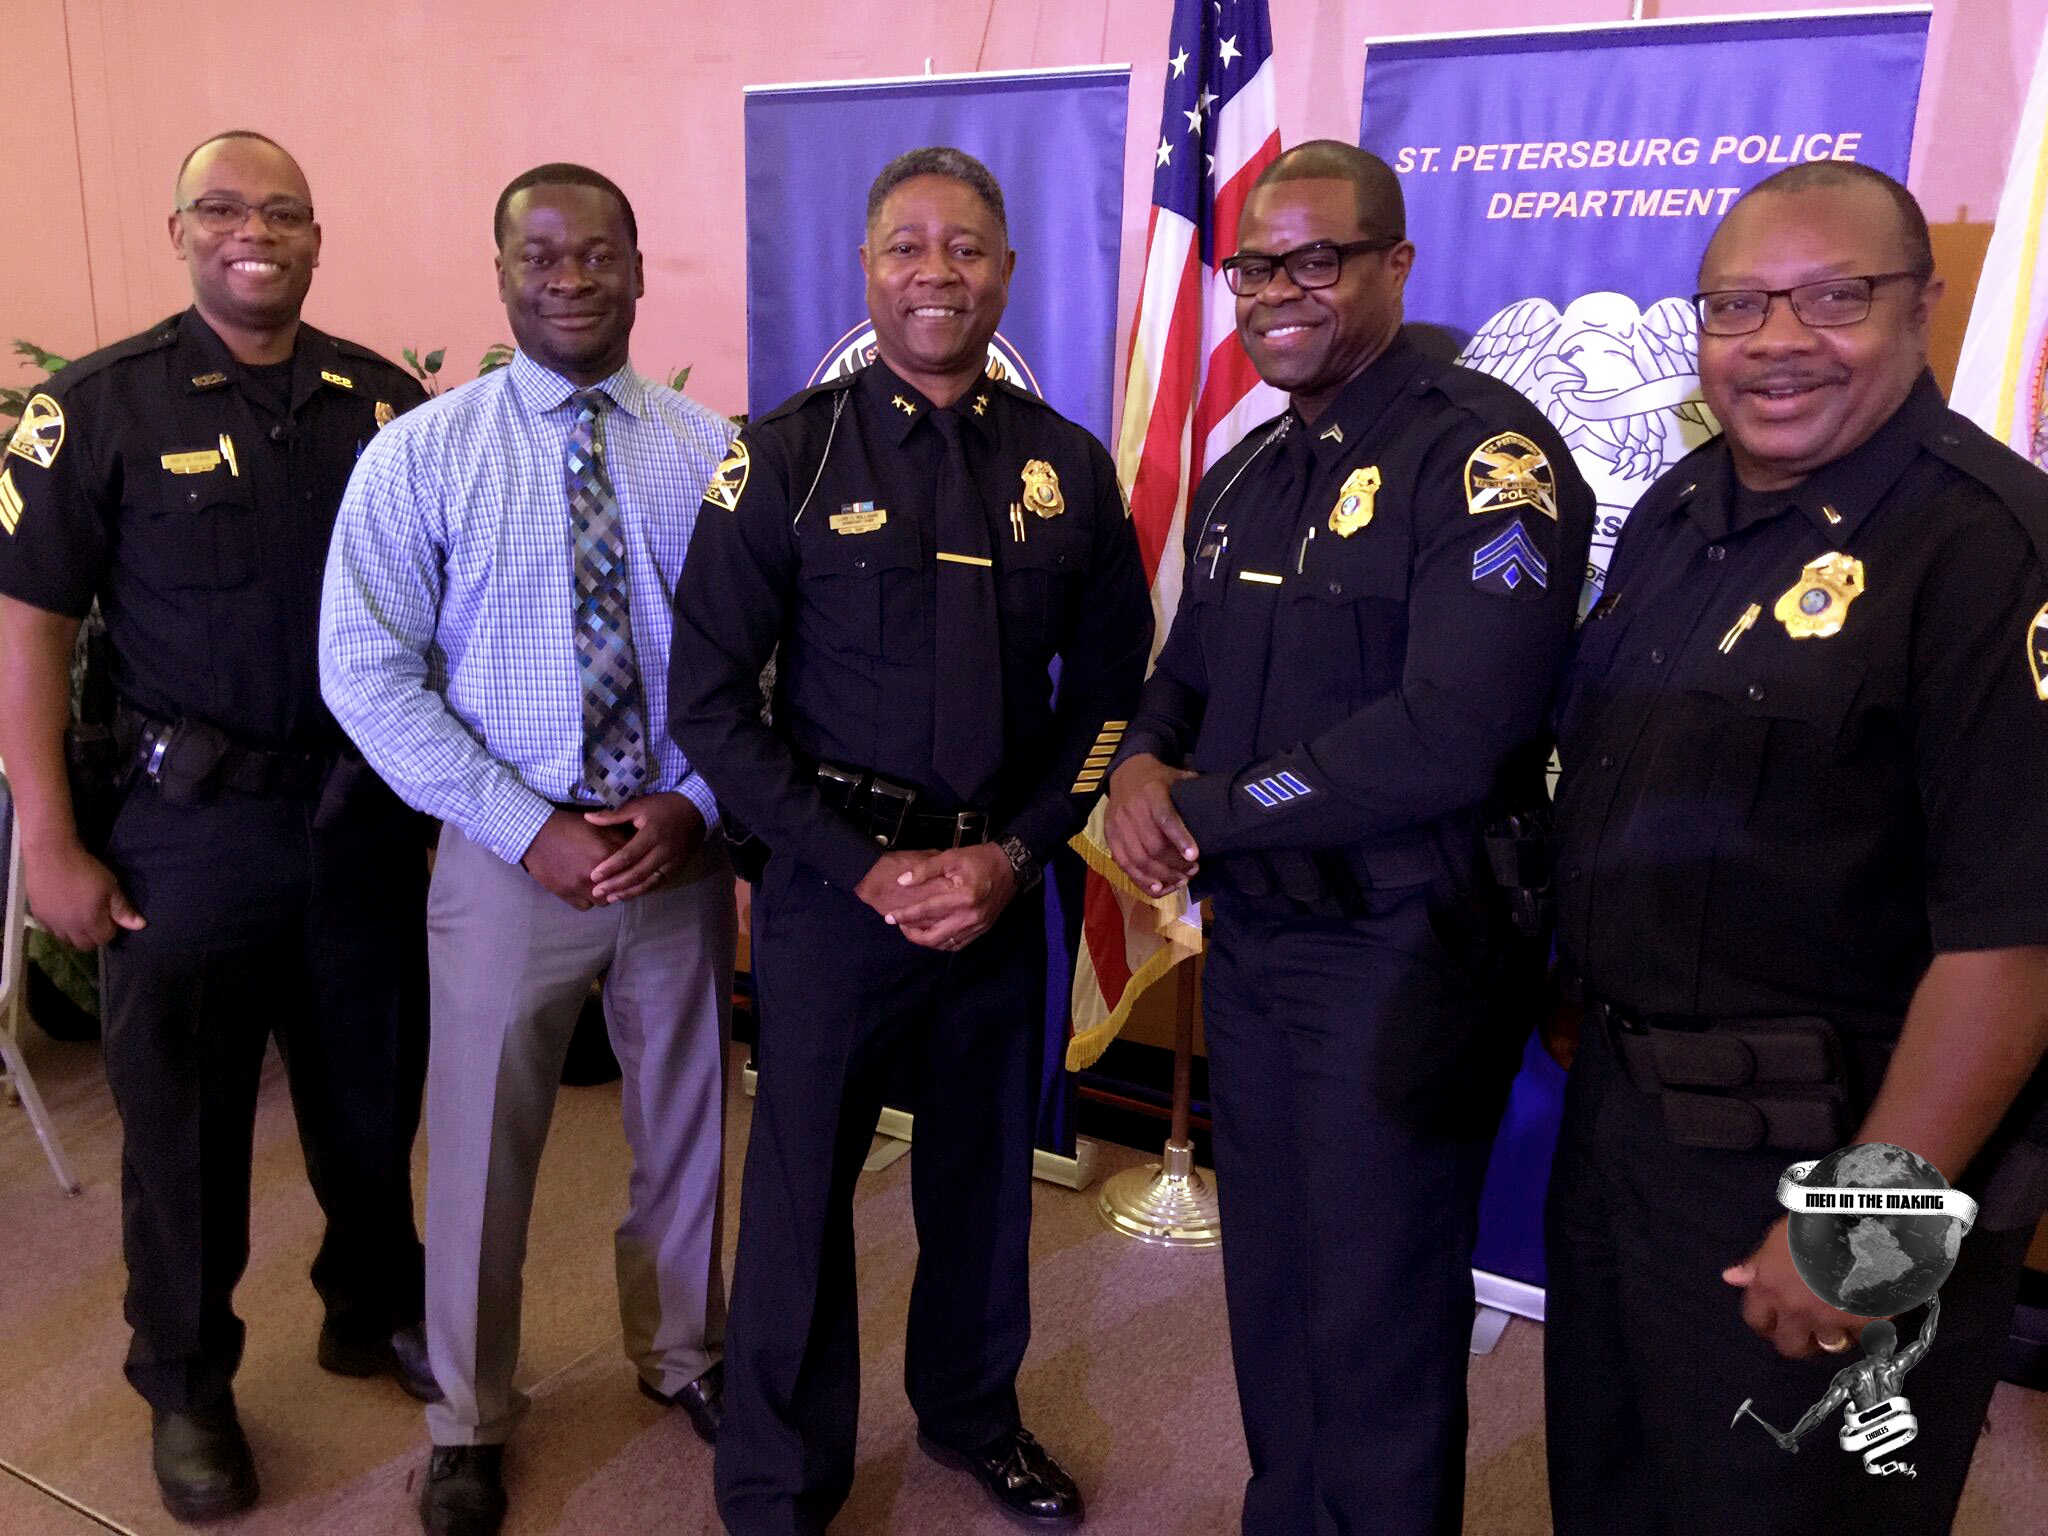 Men In The Making - SPPD Promotional Ceremony